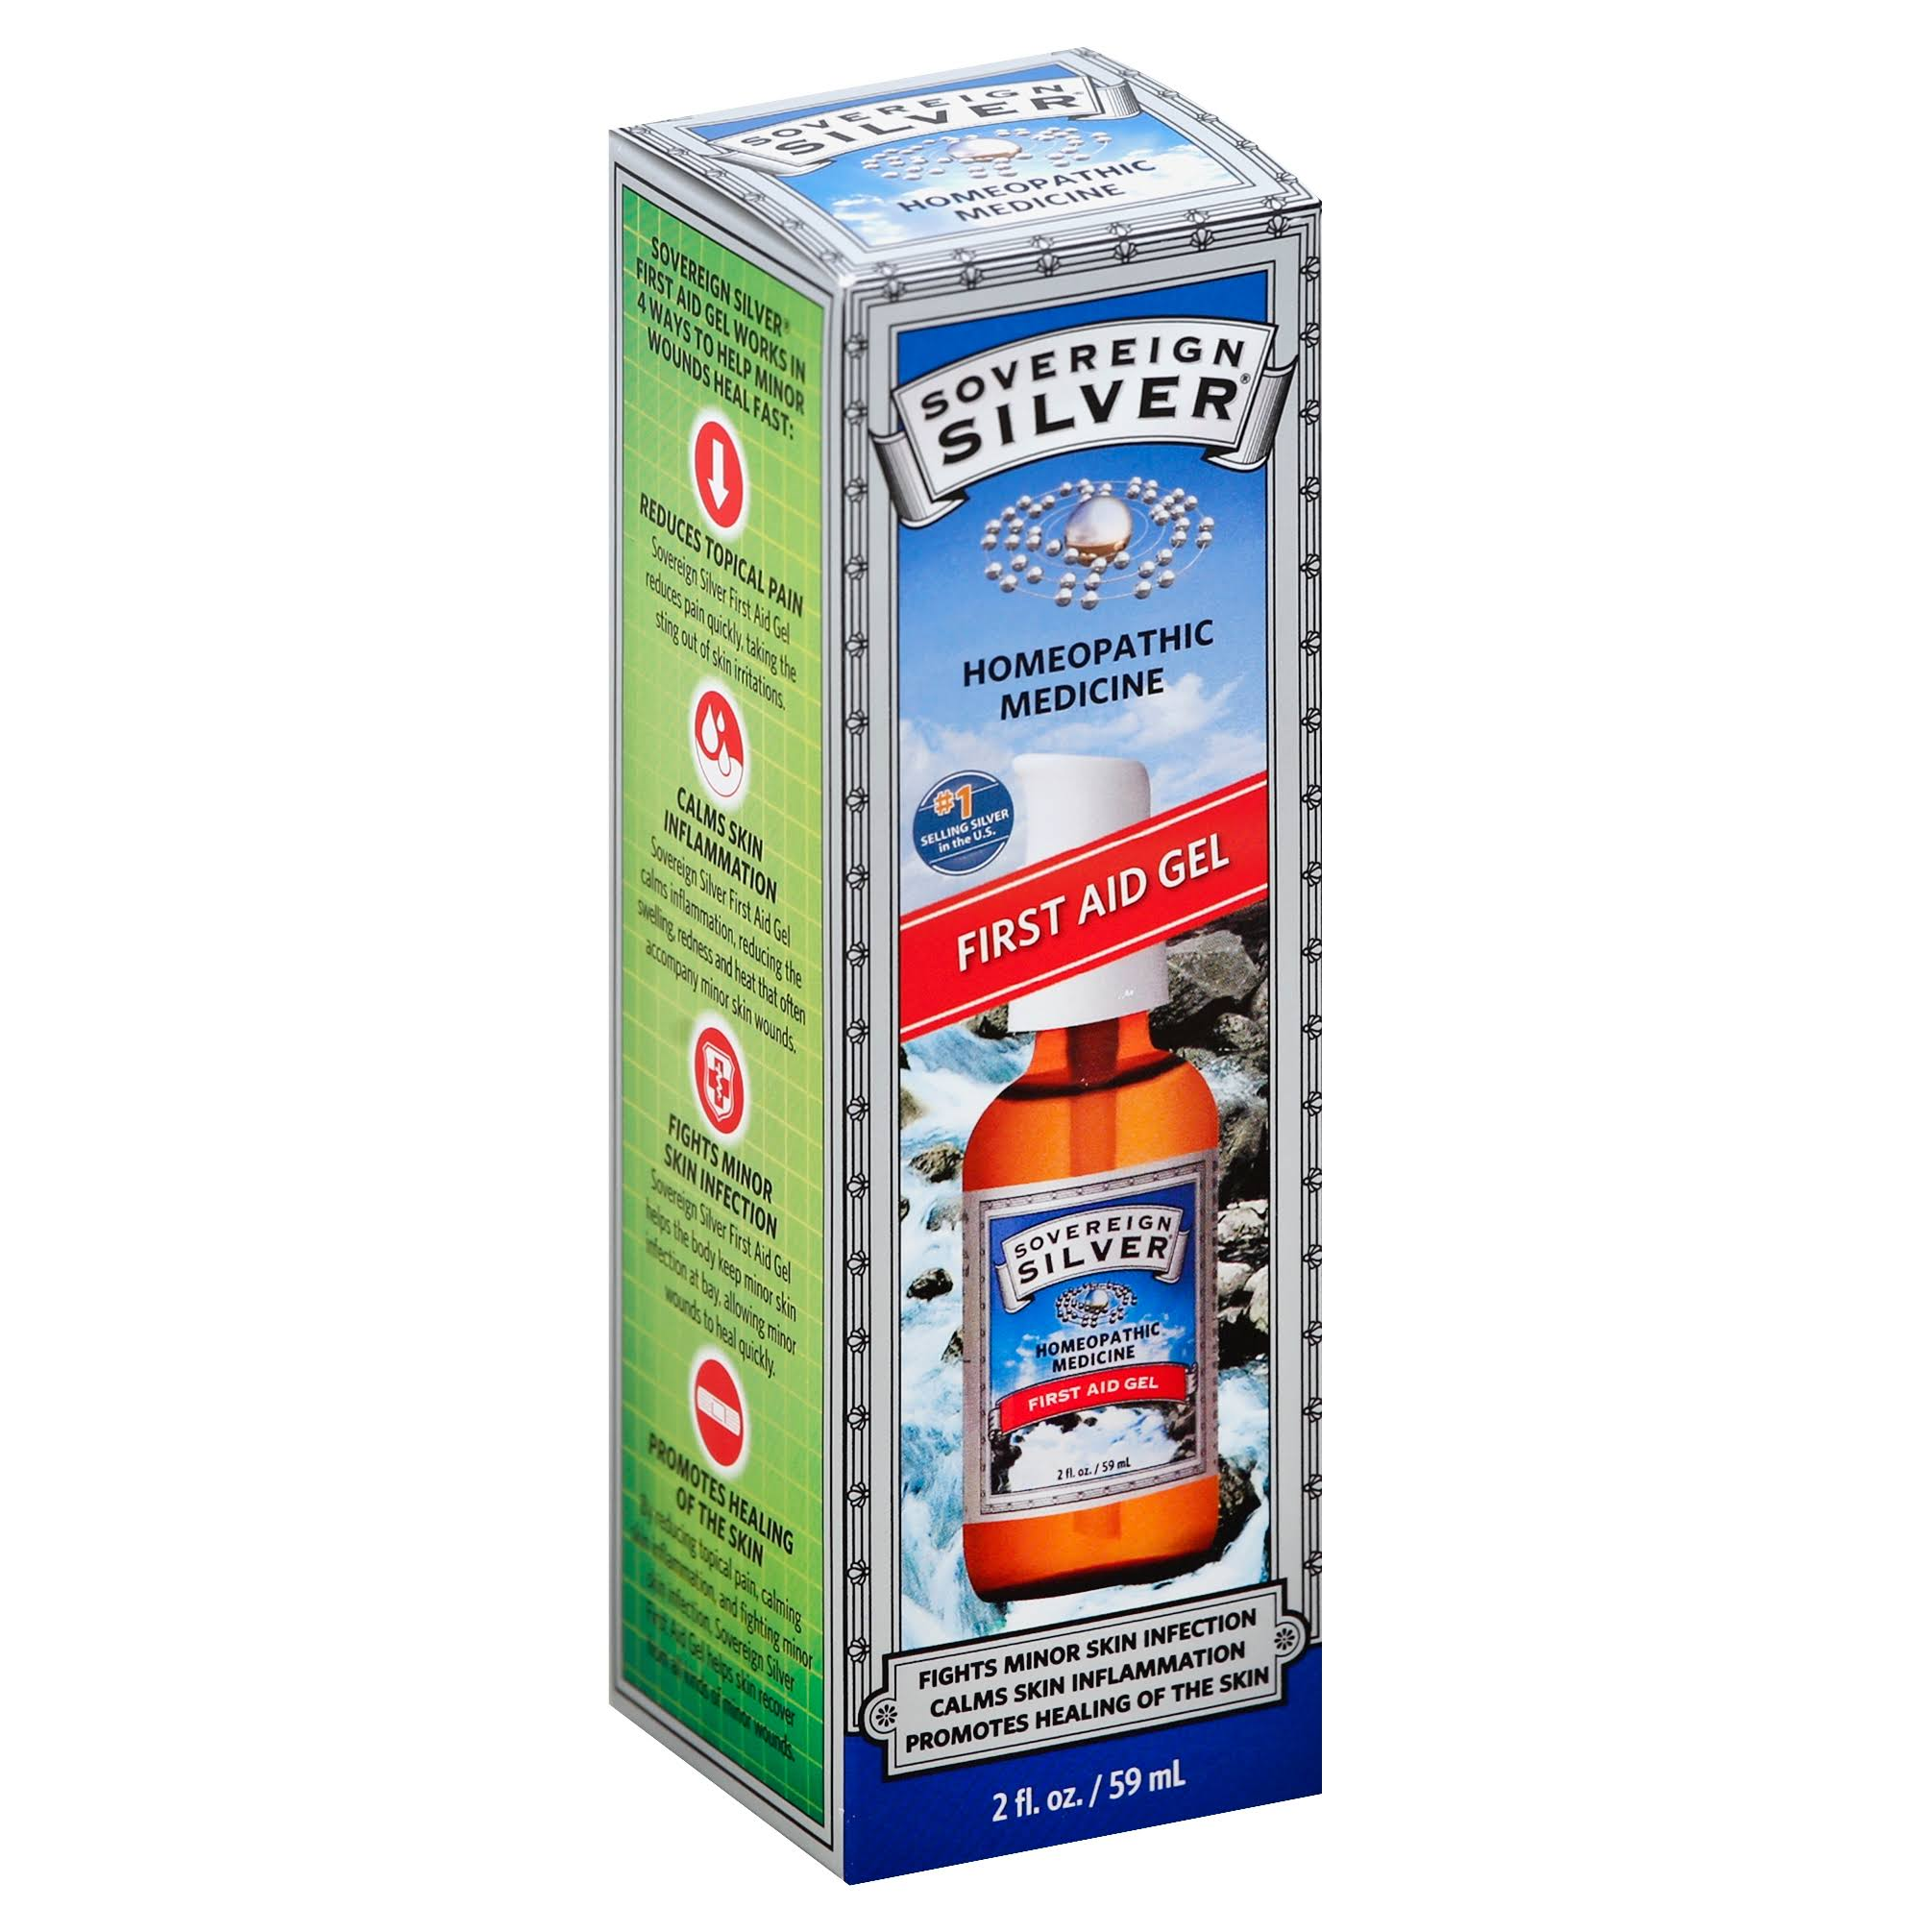 Sovereign Silver First Aid Gel - 2oz